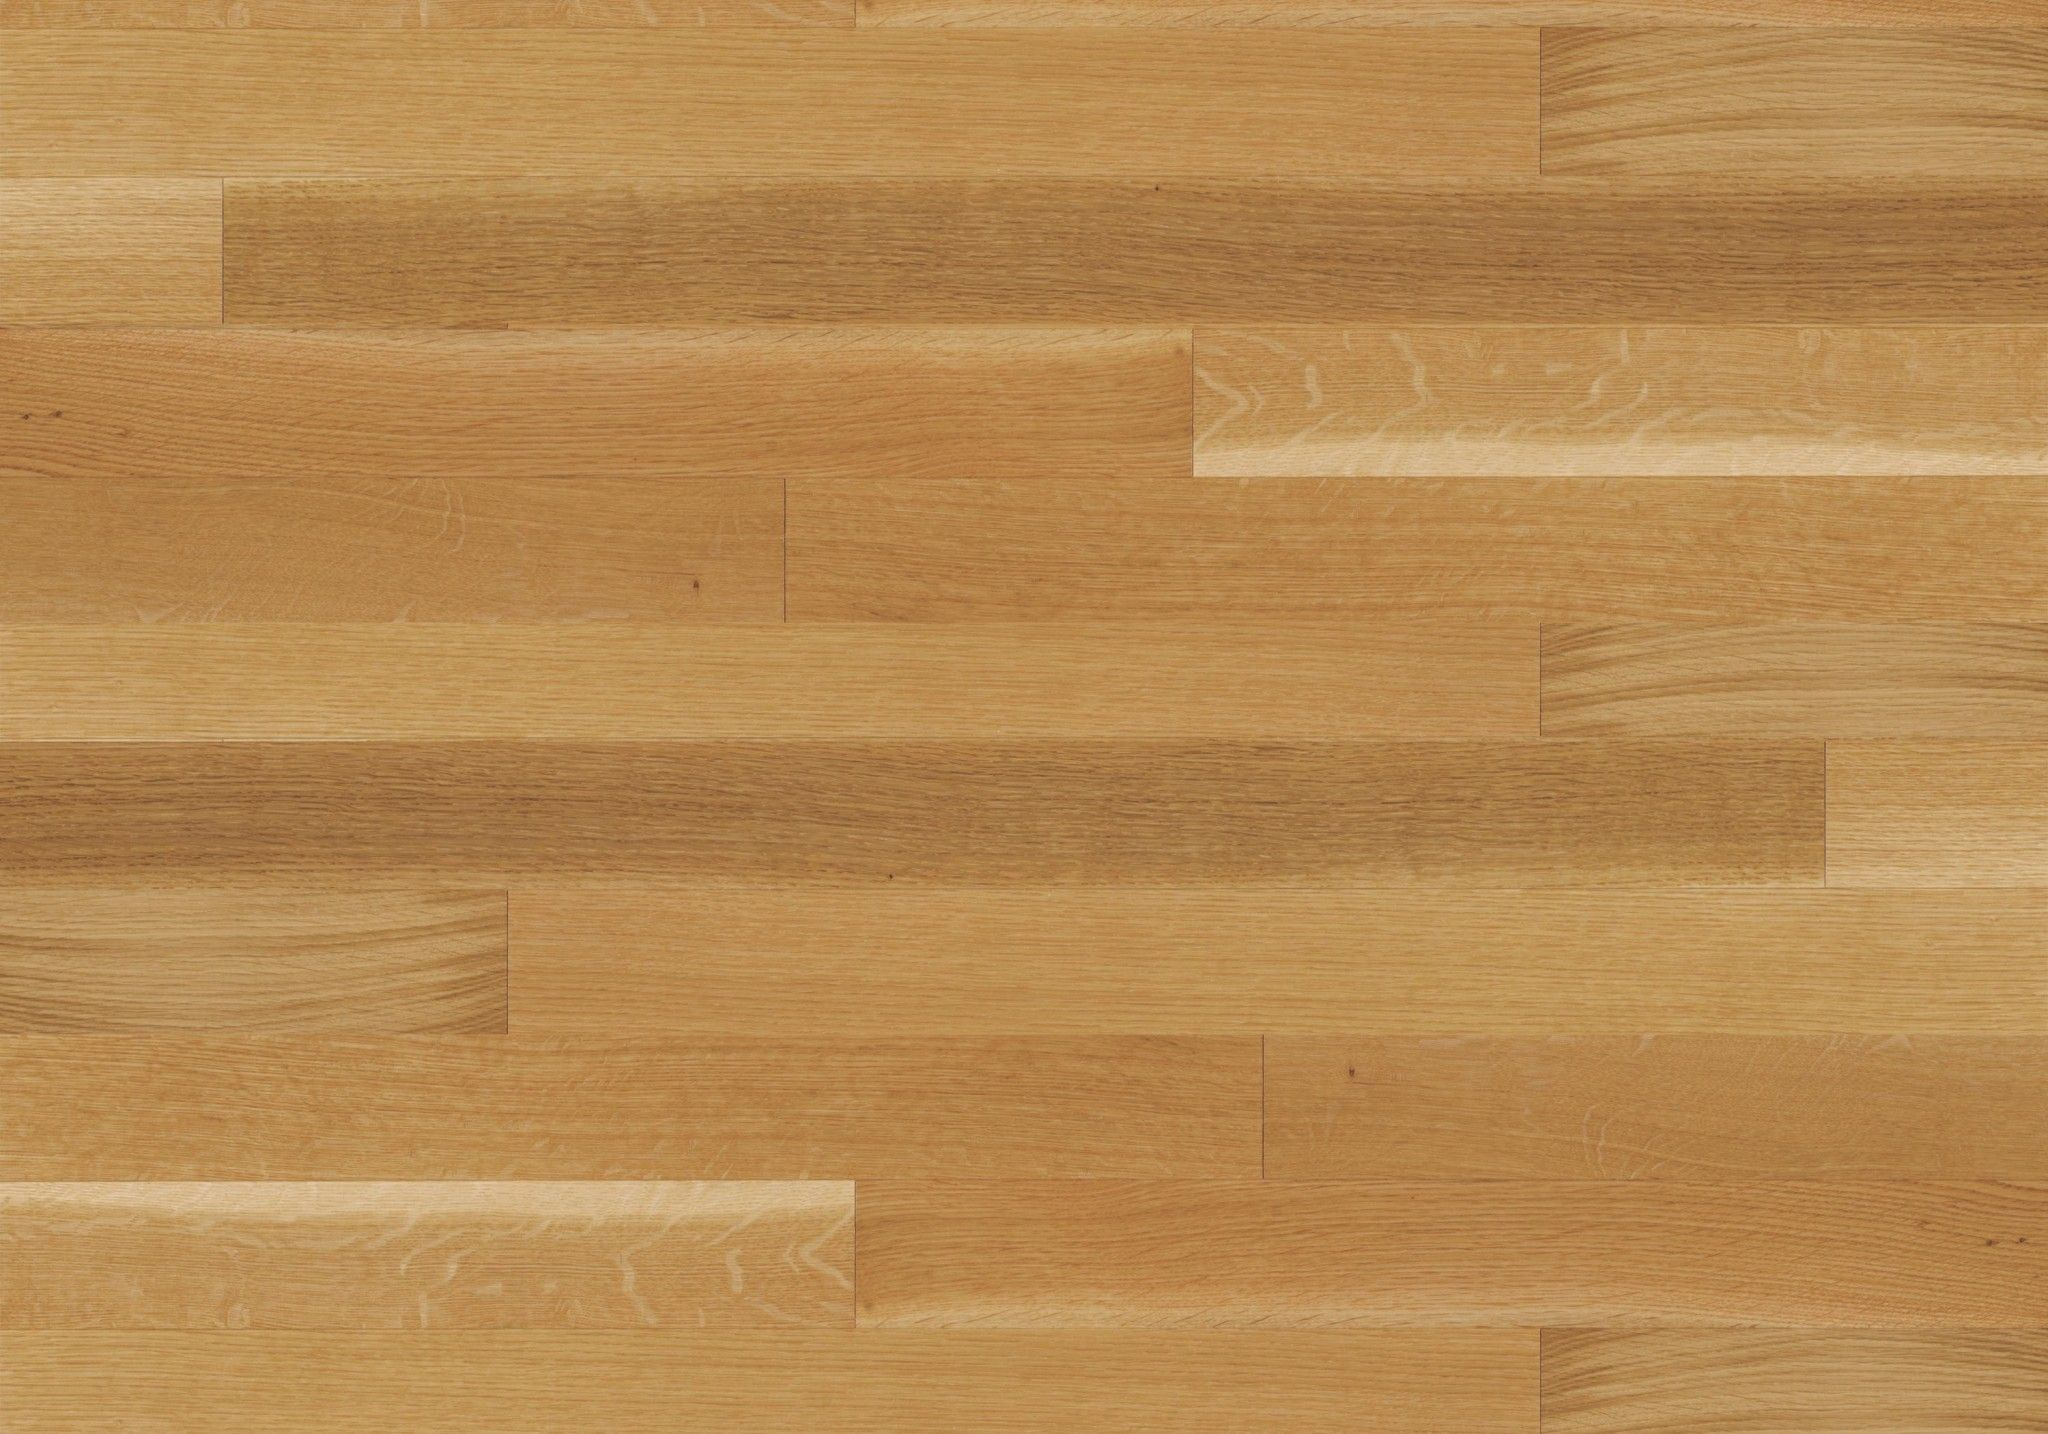 Difference between red and white oak hardwood flooring in